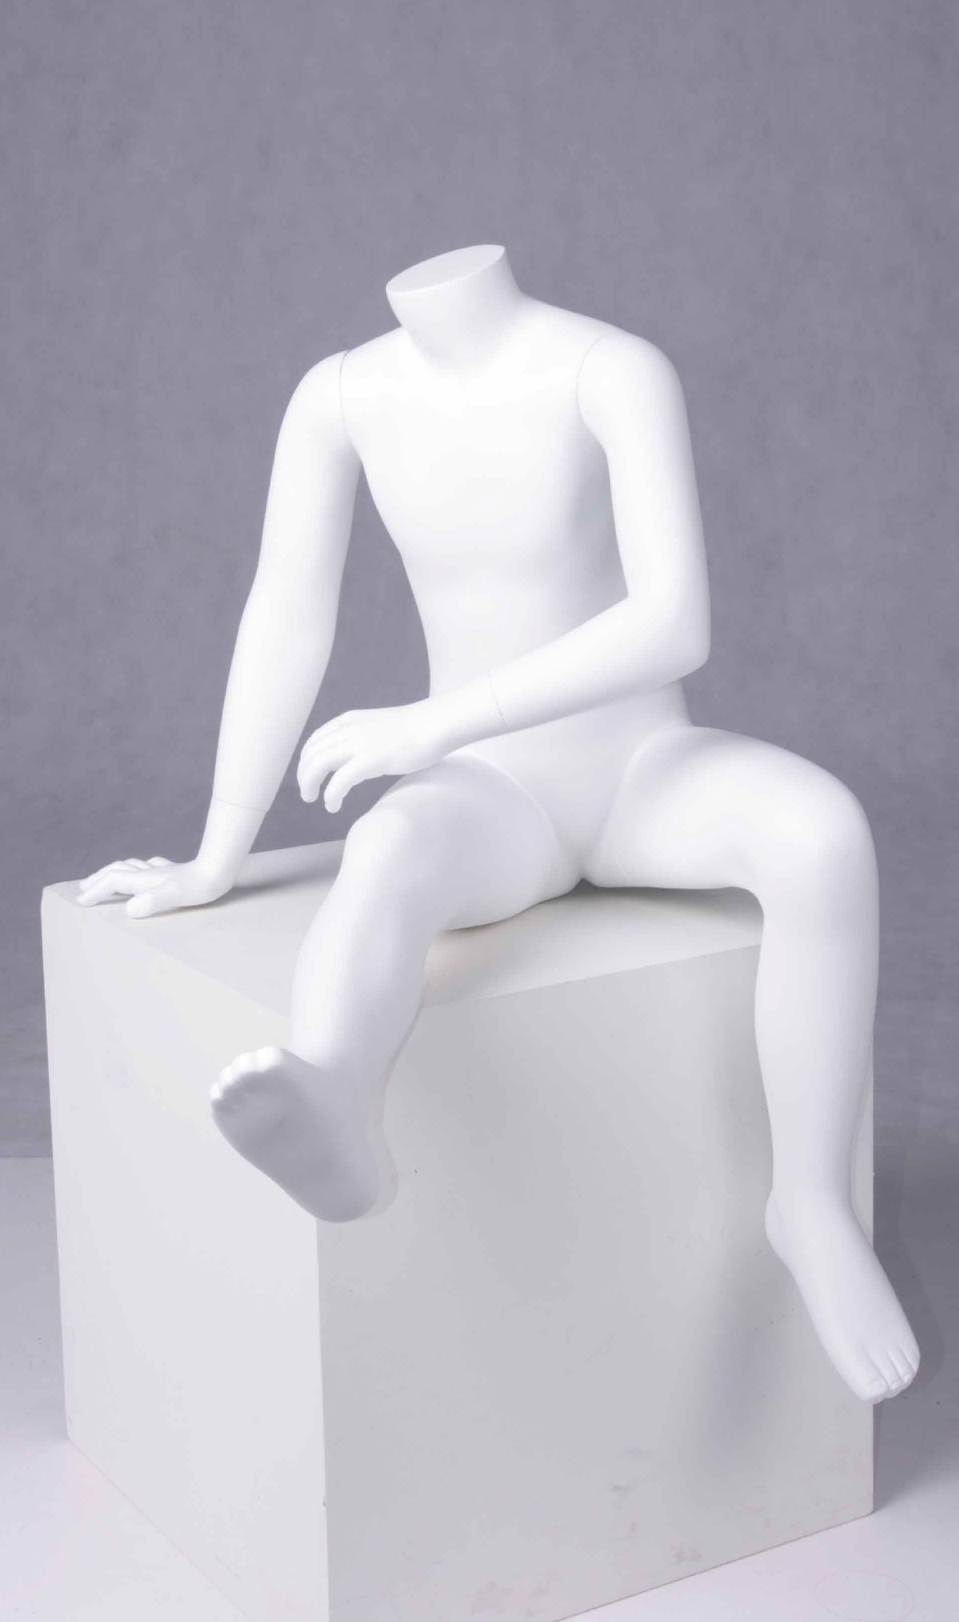 Childrens Mannequins from our Store Display Products